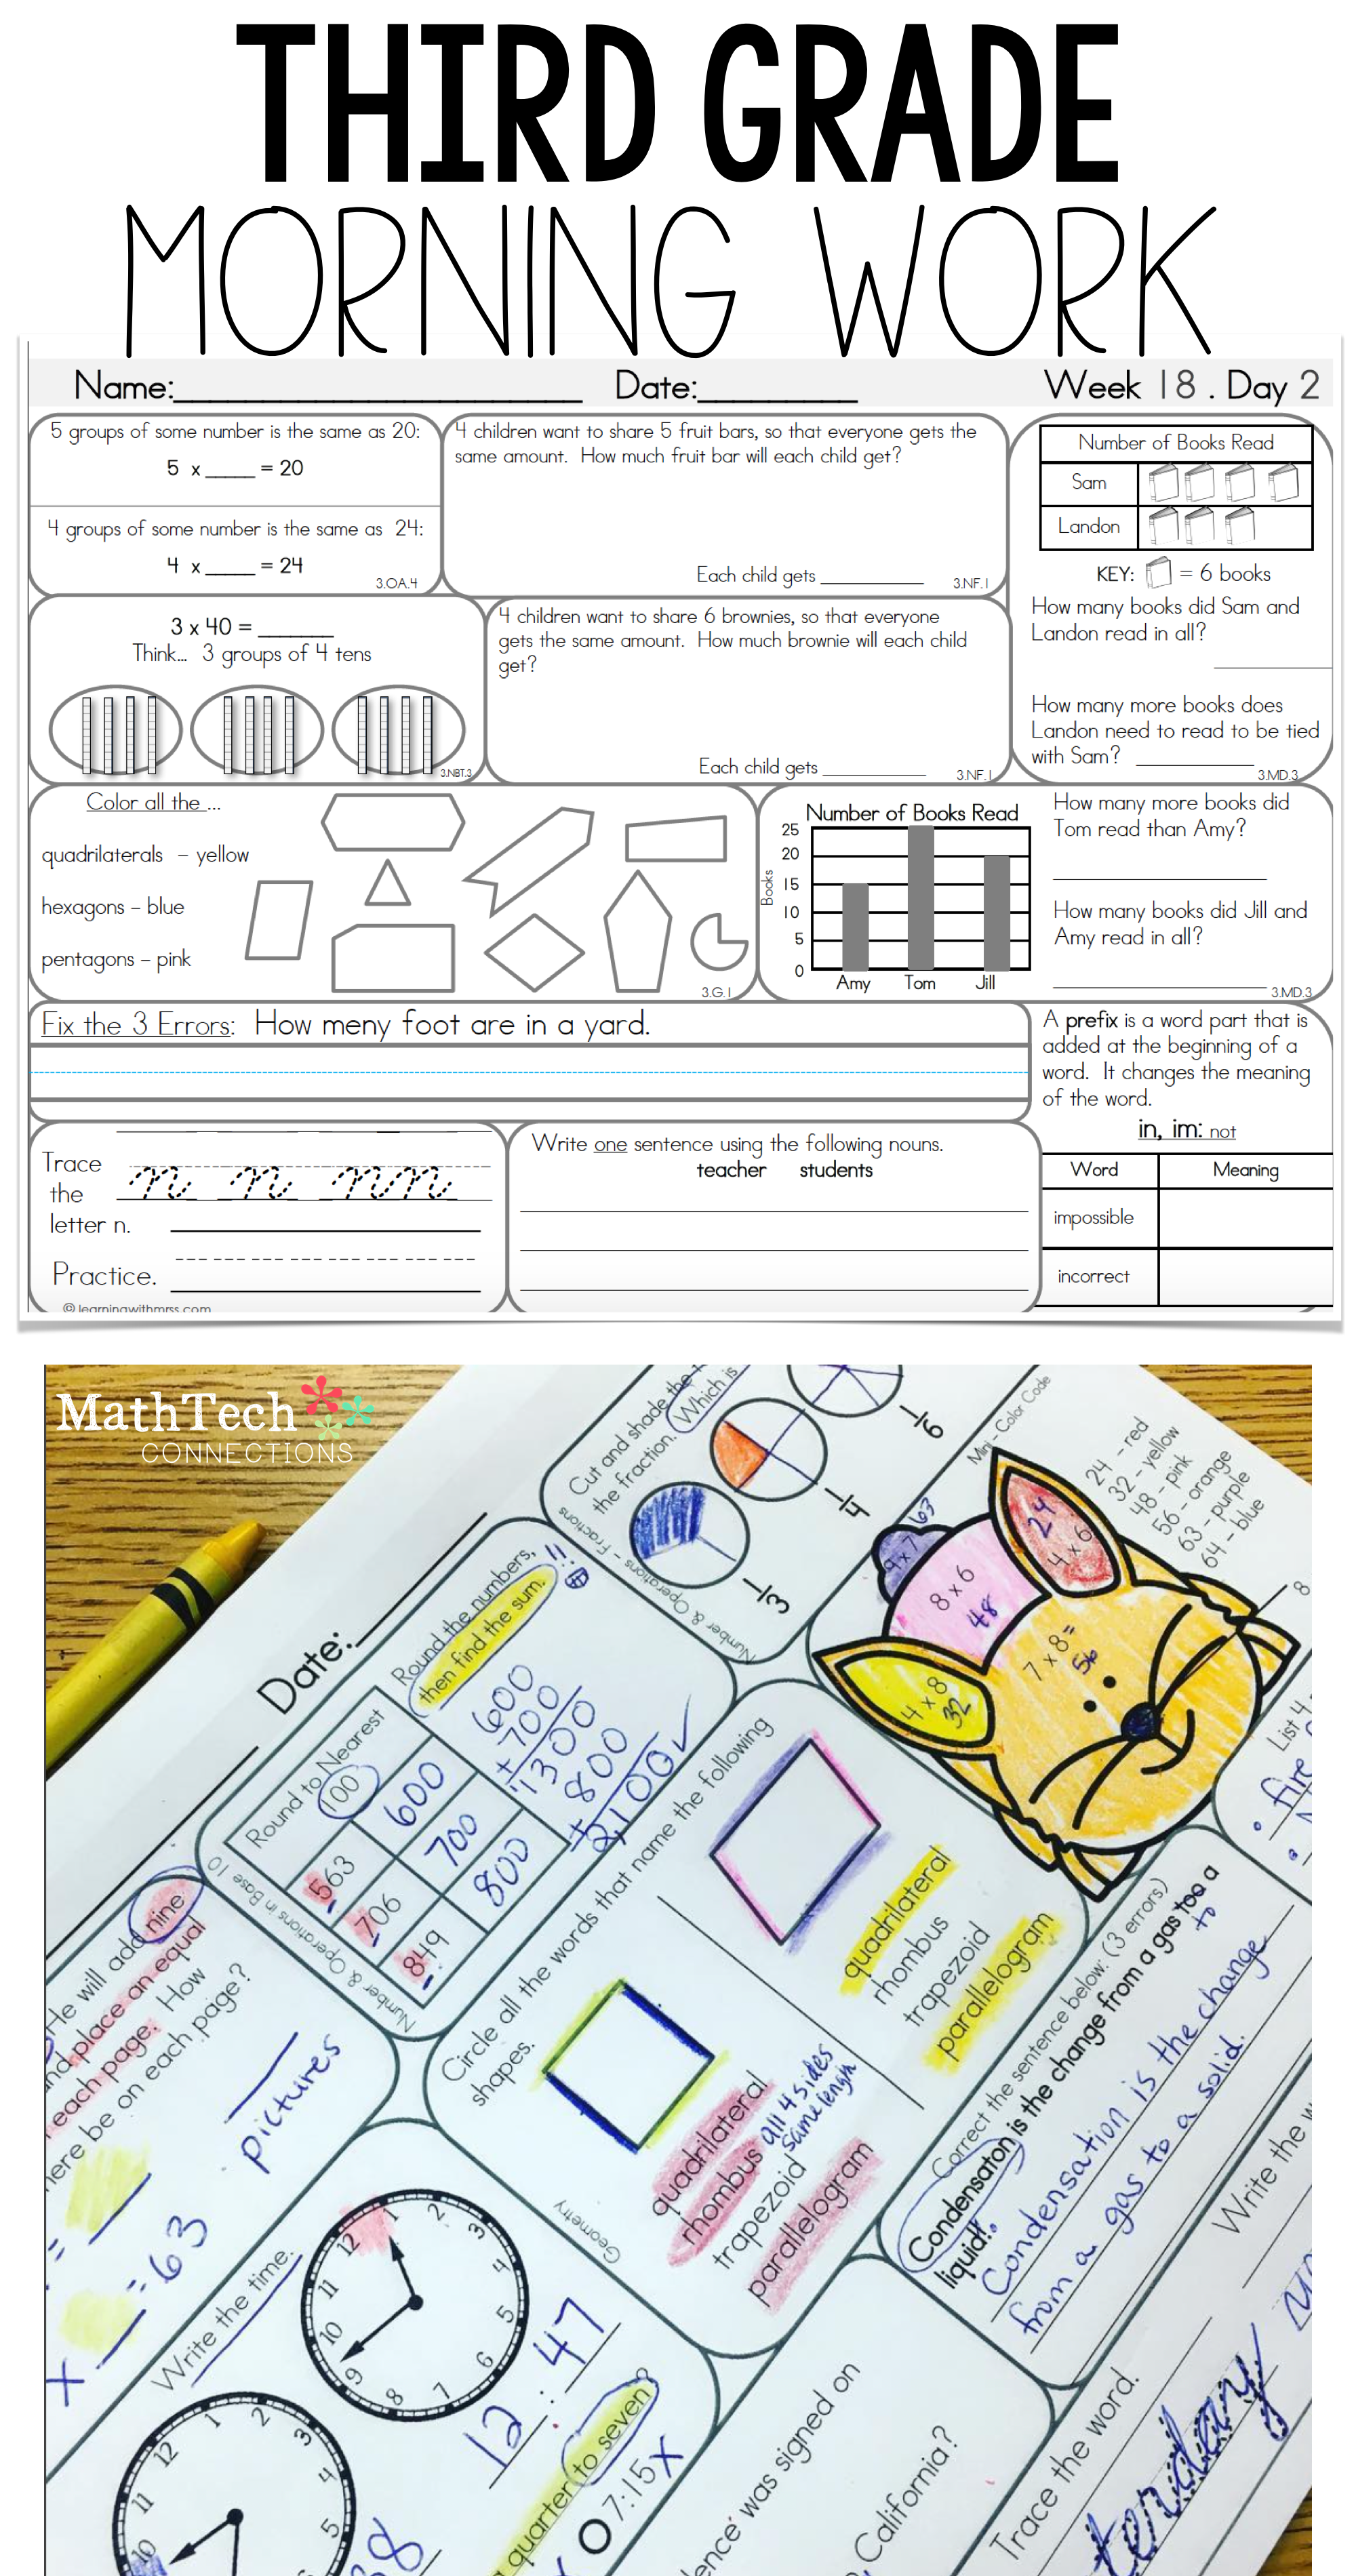 Morning Work 3rd Grade Math Worksheets   Printable Worksheets and Activities  for Teachers [ 3800 x 2000 Pixel ]